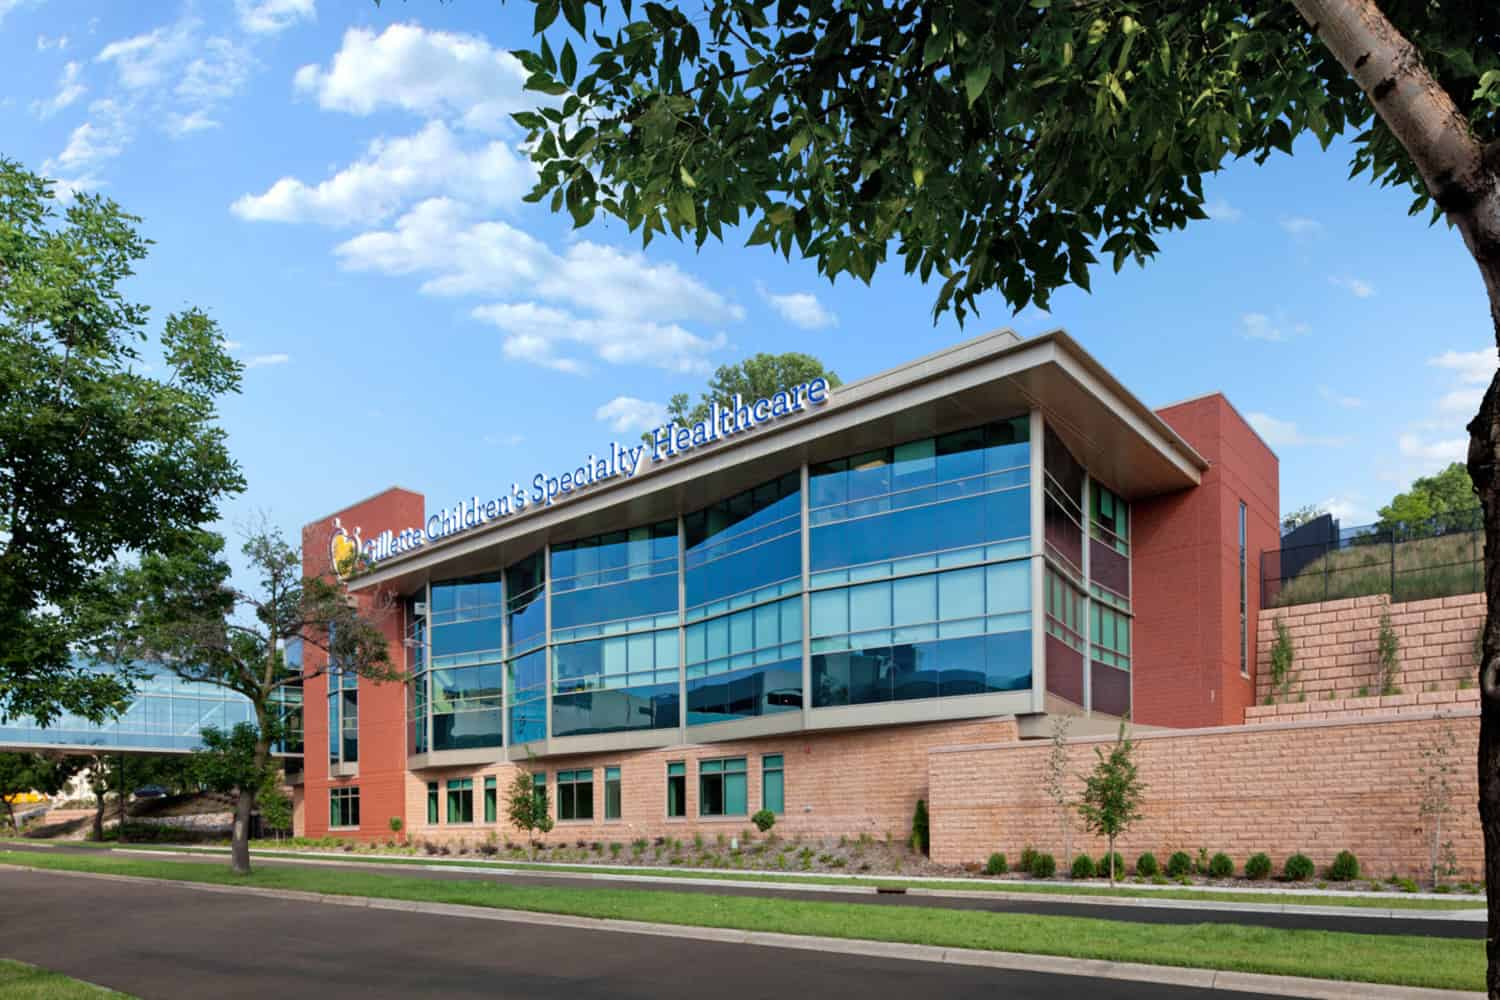 GILLETTE CHILDREN'S SPECIALTY HEALTHCARE CAMPUS EXPANSION & RENOVATION